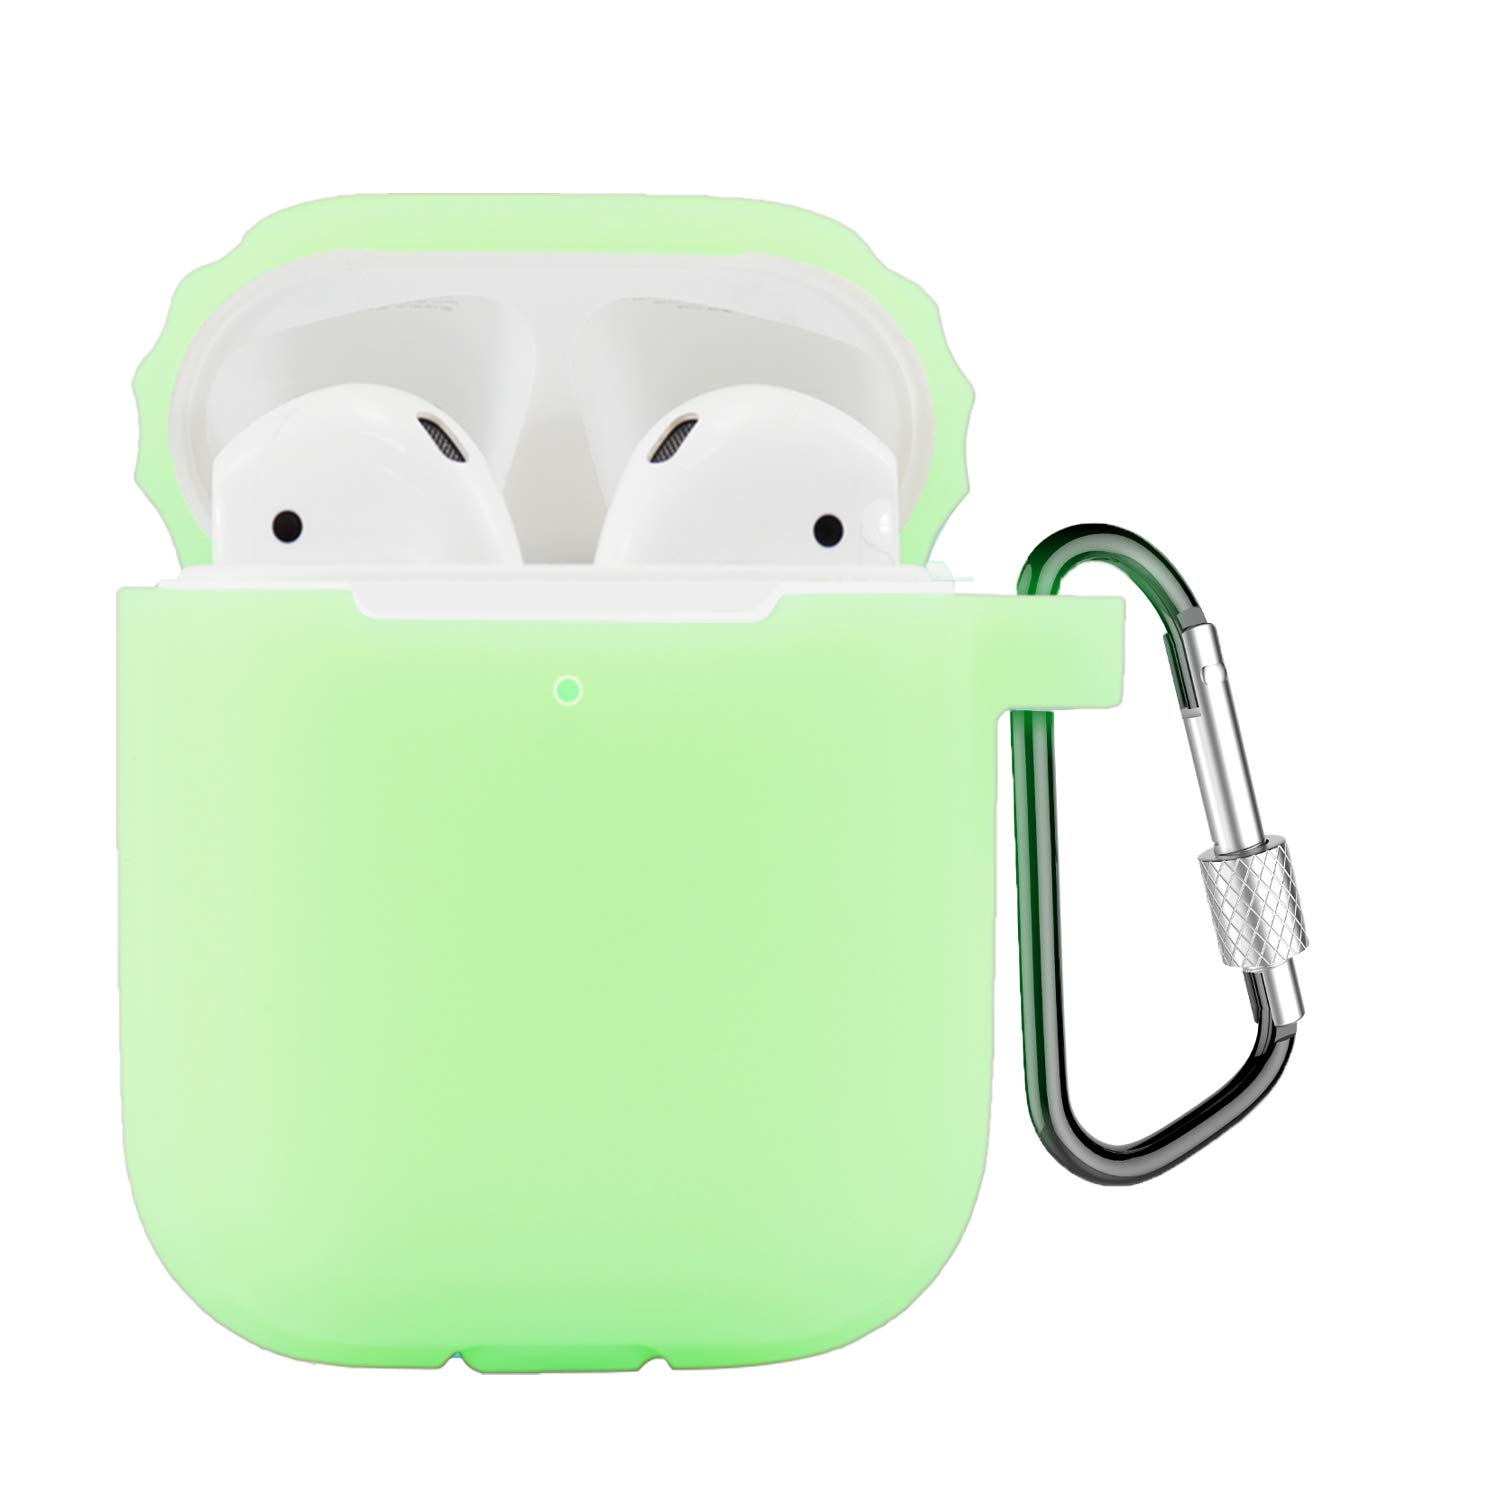 Compatible Airpods Case, Coffea Airpods Accessories Protective Silicone Case Cover and Skin with Carabiner for Airpods (Night Glow Yellow)